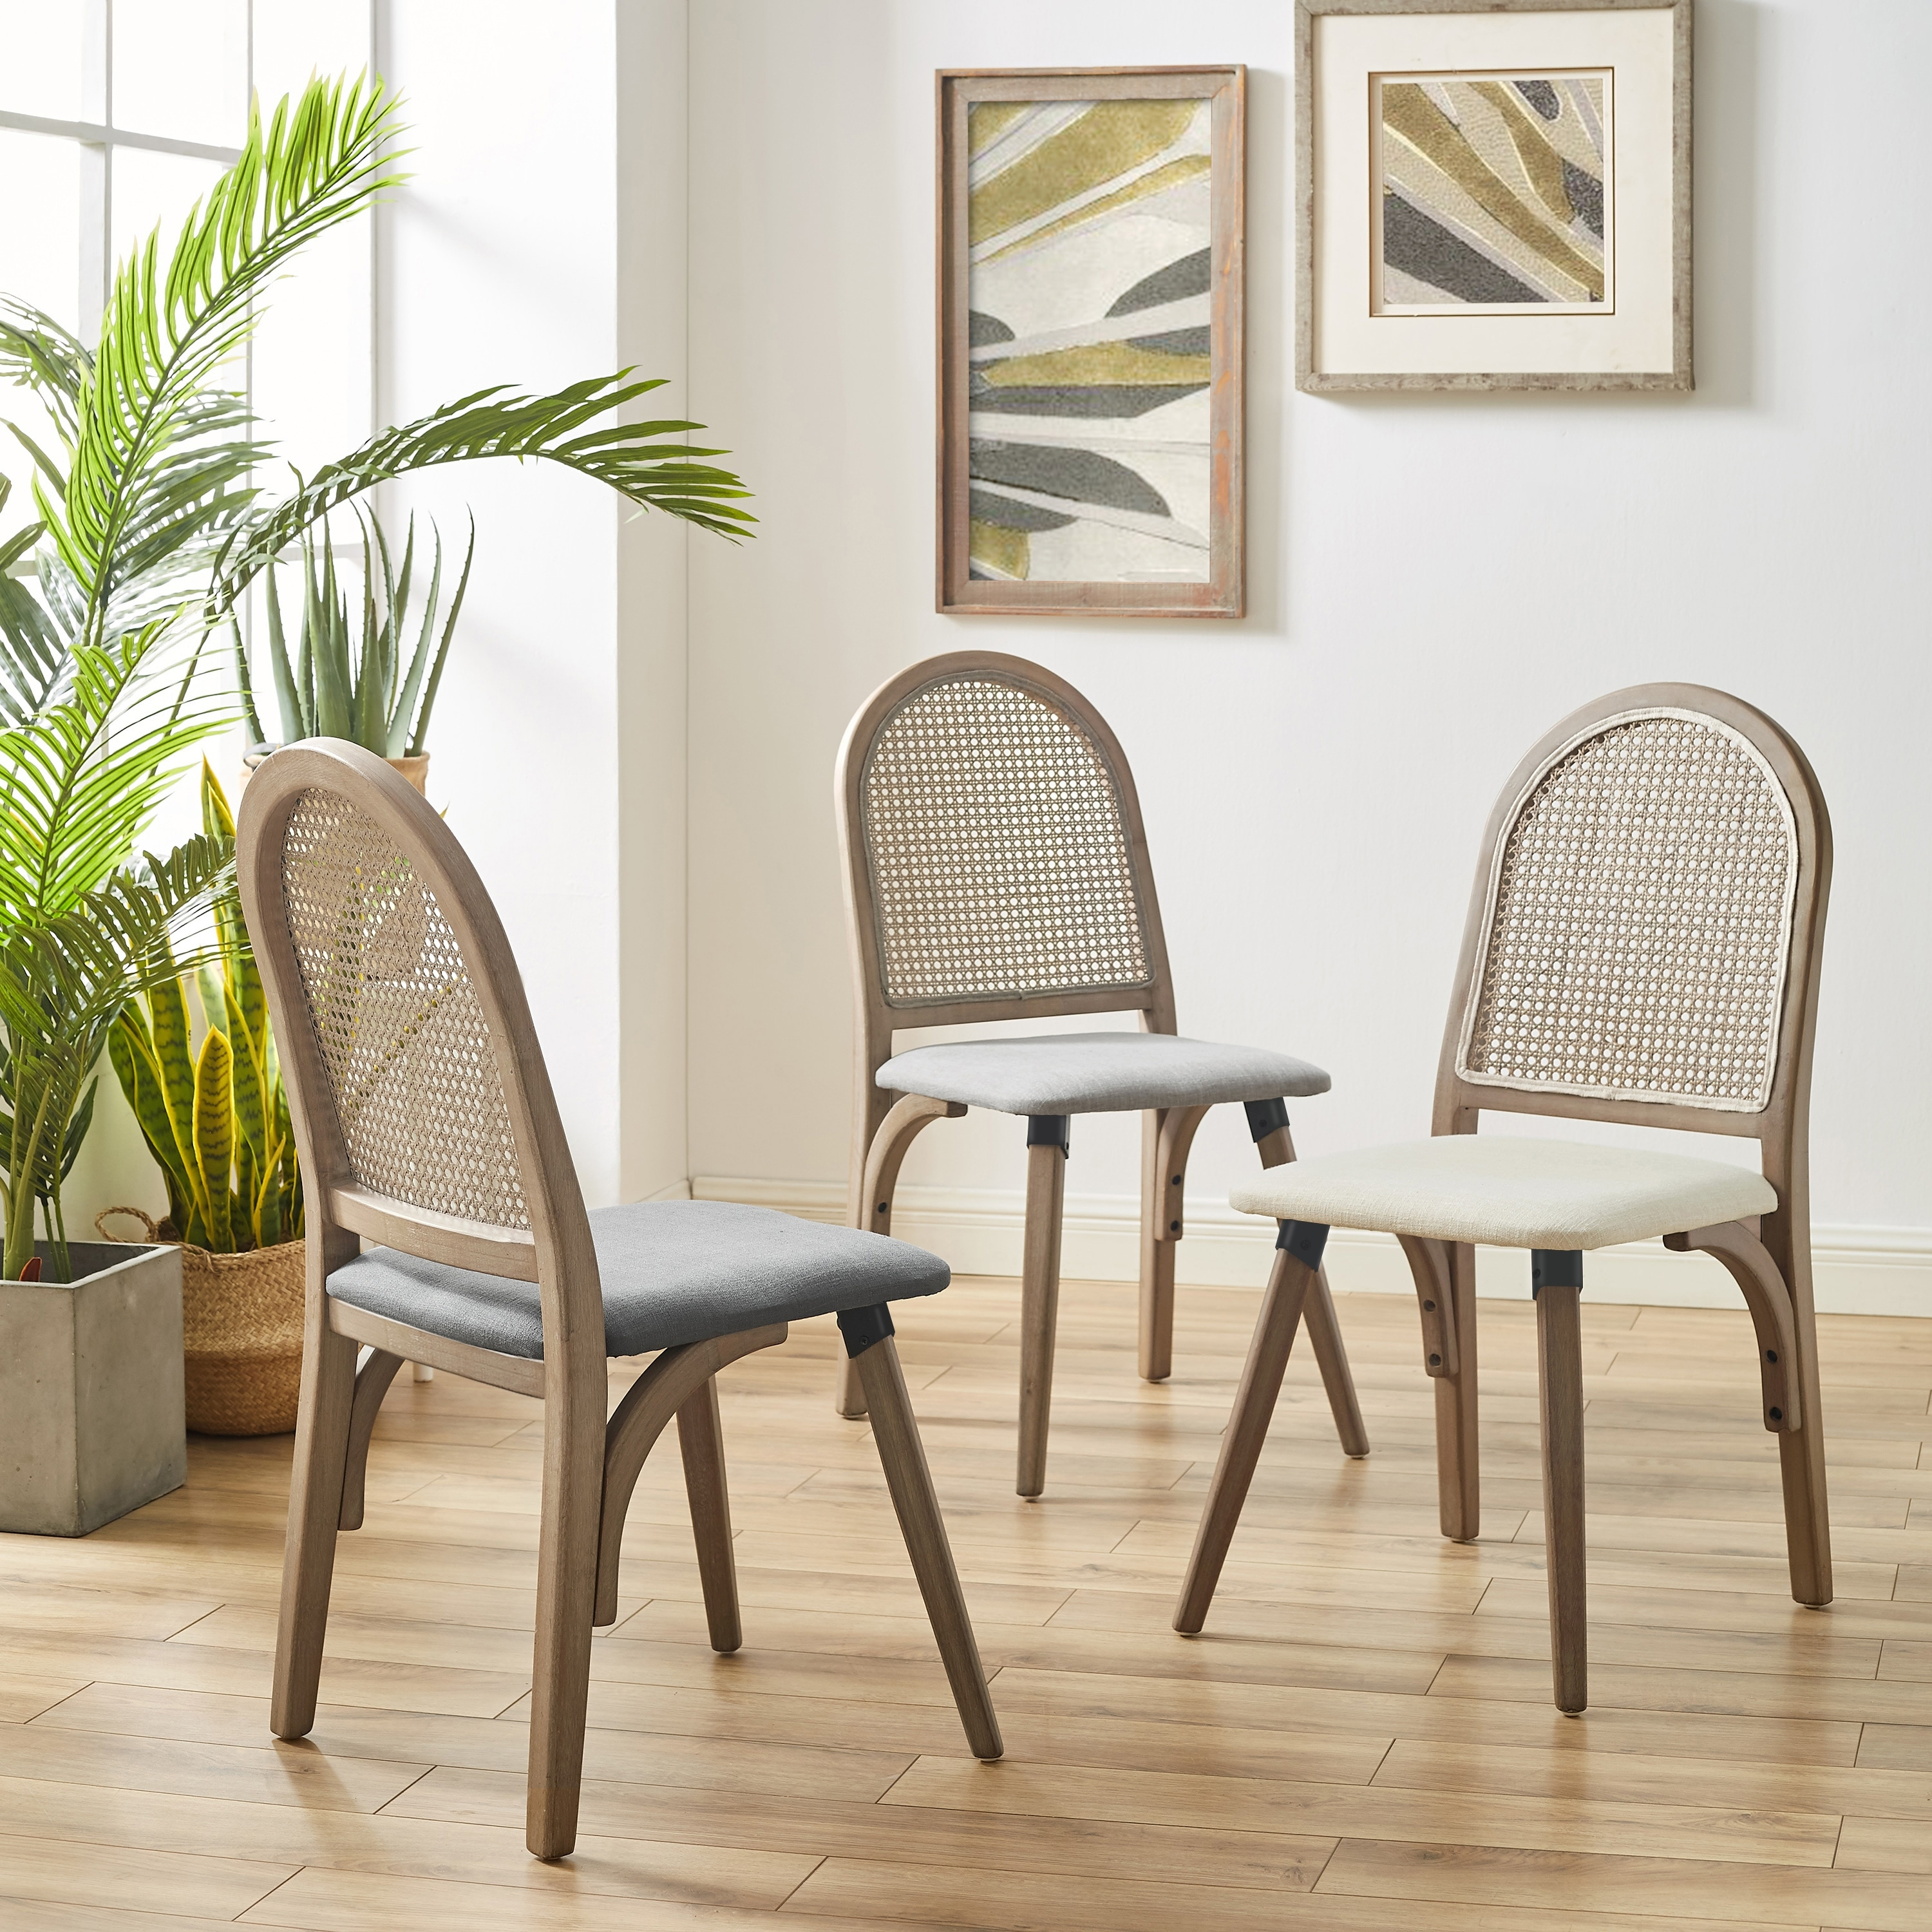 Art Leon Rattan Linen Fabric Cane Dining Side Chair With Bamboo Frame Overstock 30668069